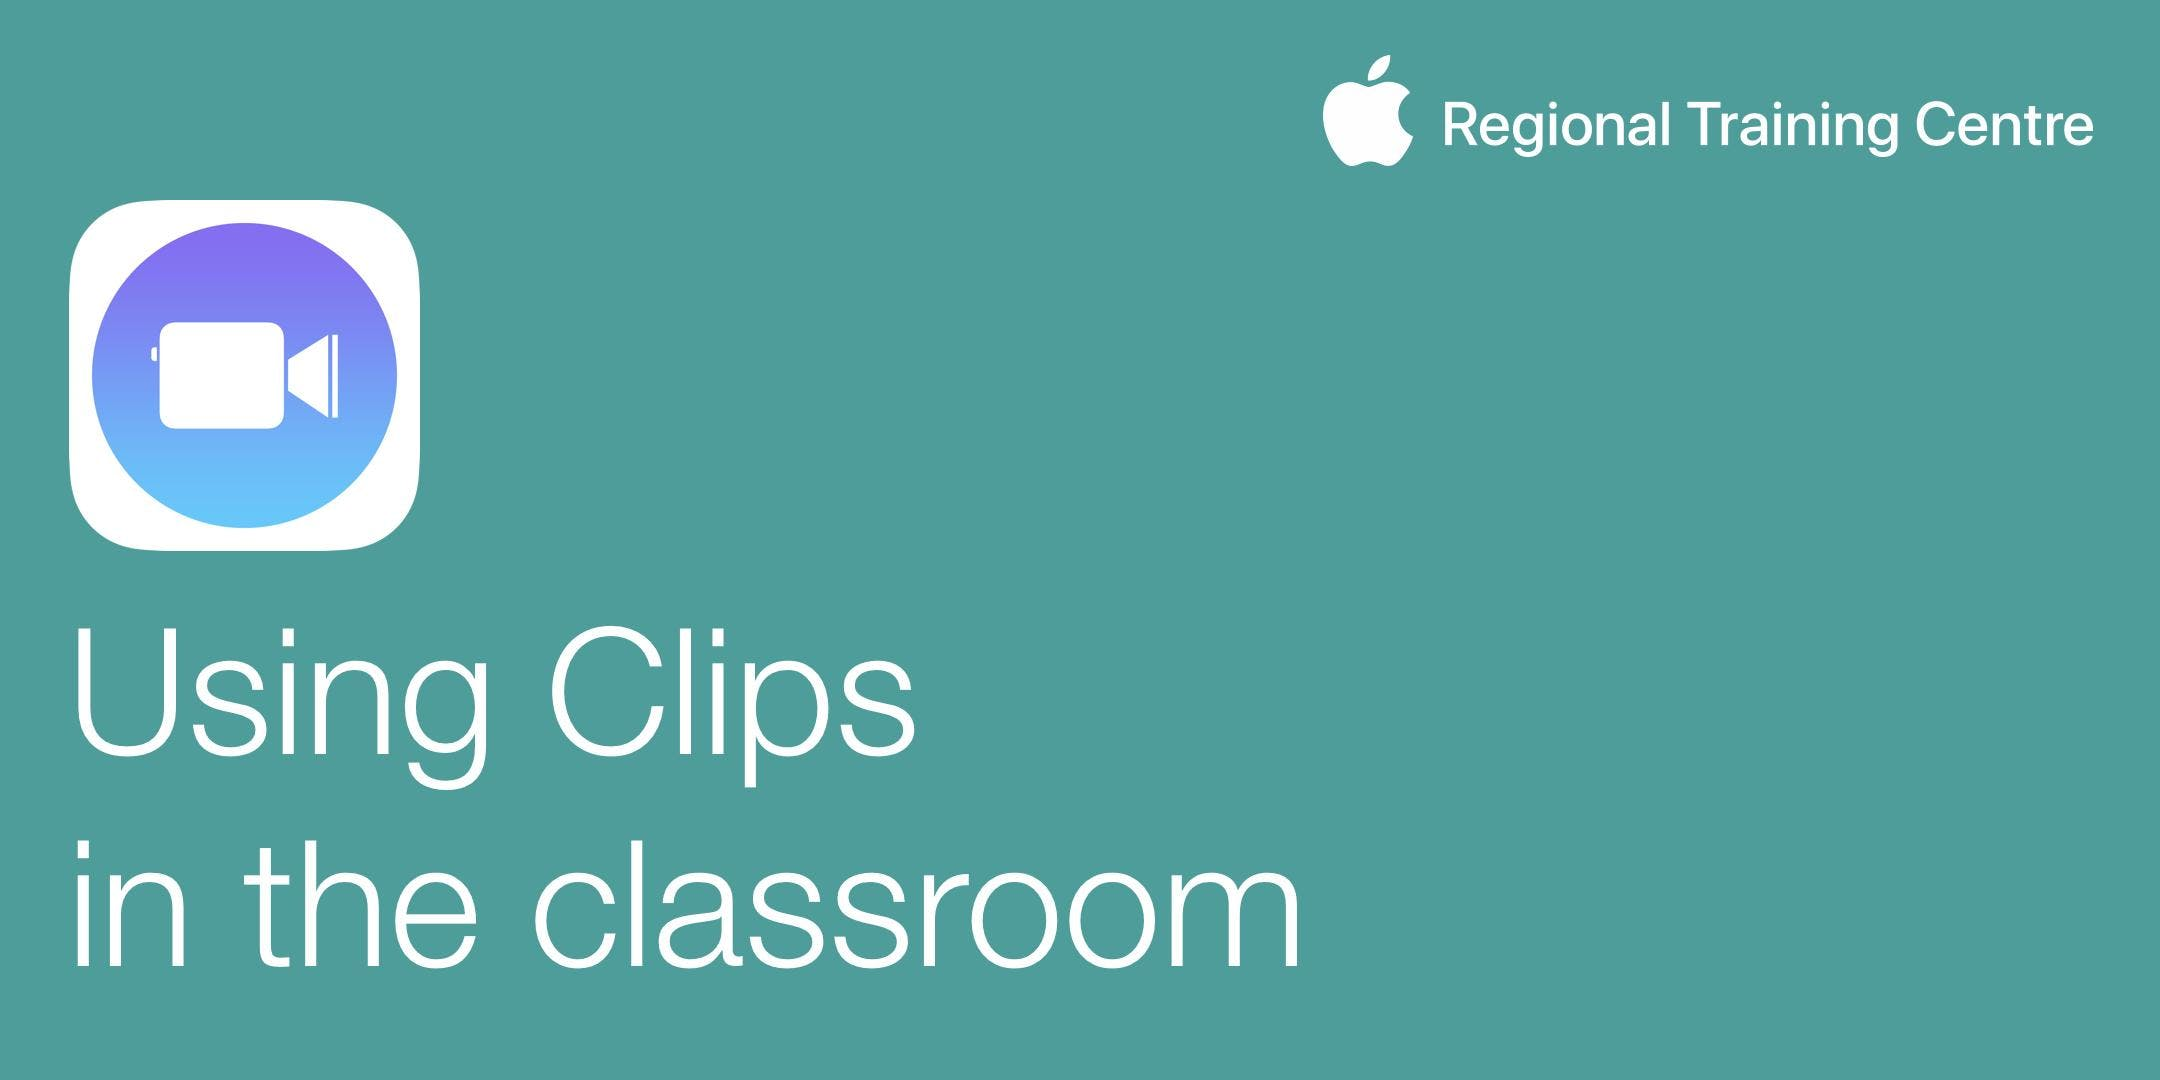 Using Clips in the classroom